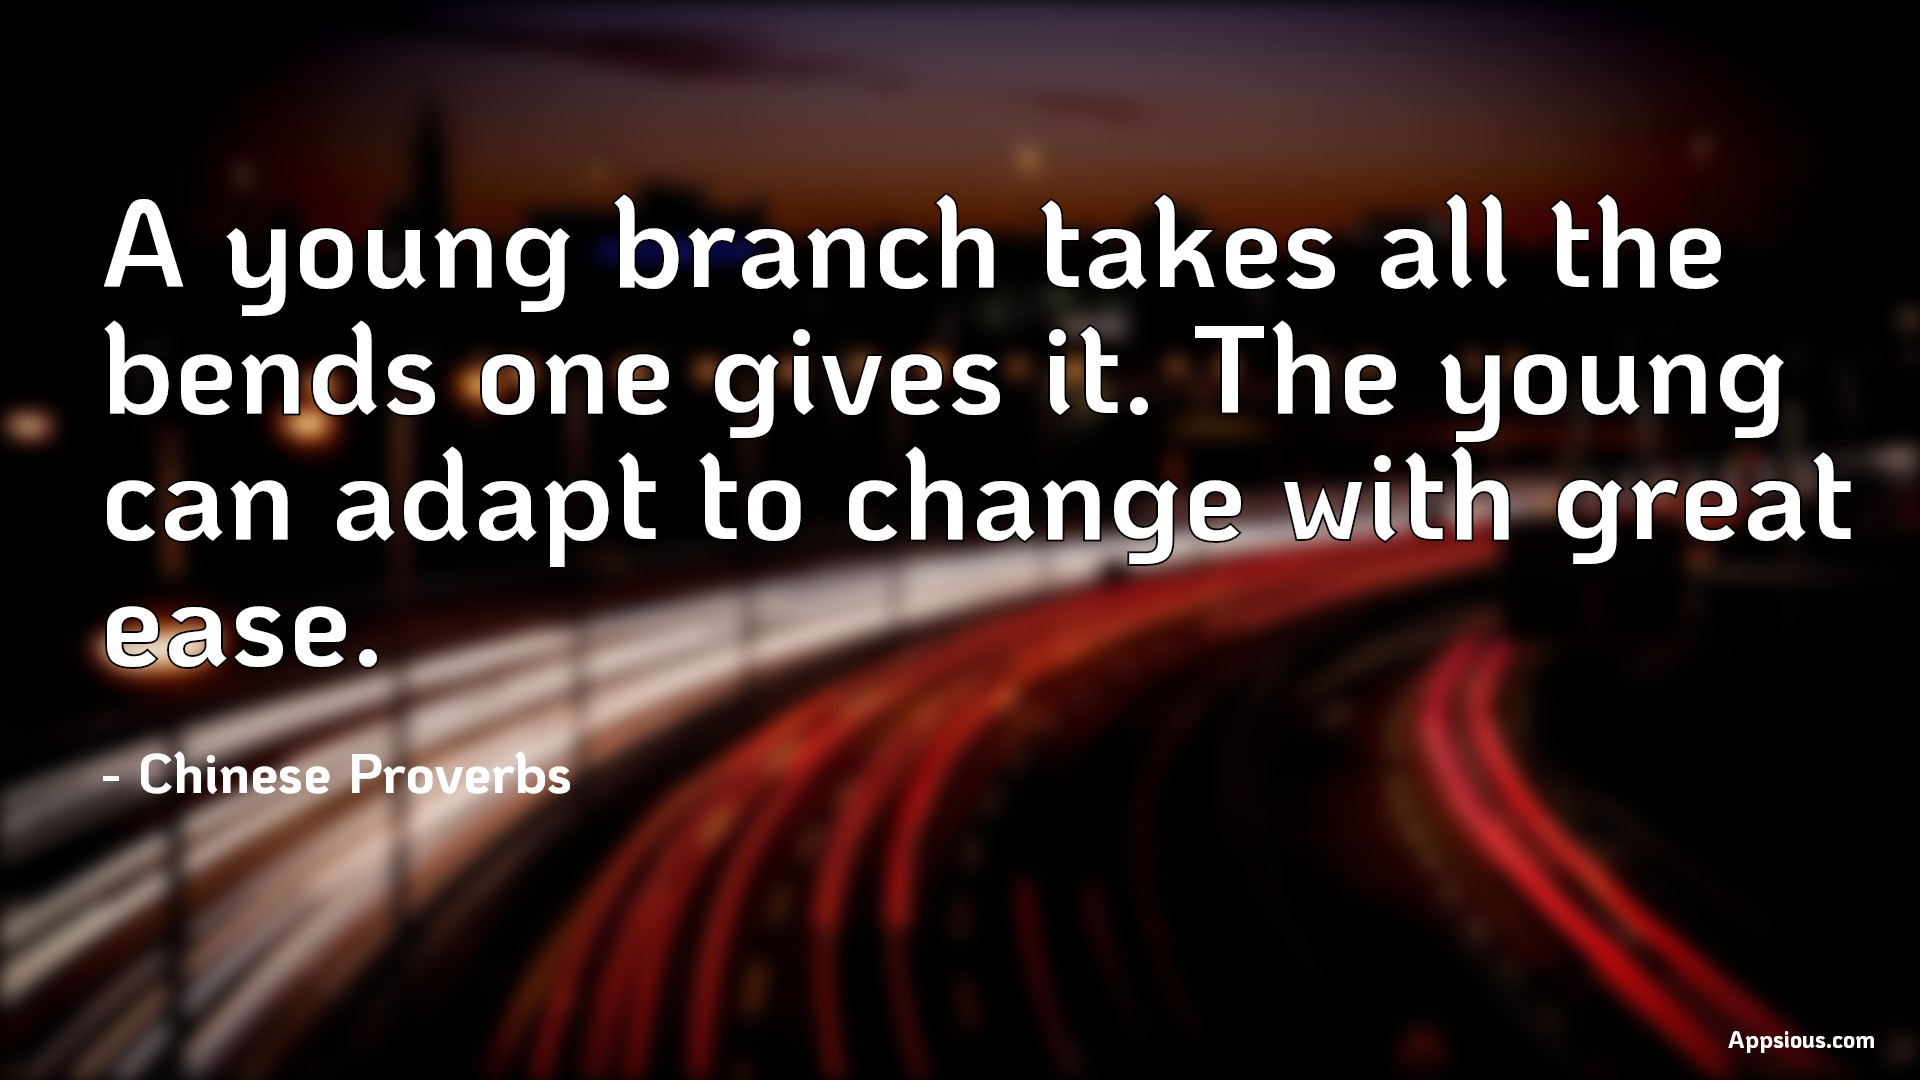 A young branch takes all the bends one gives it. The young can adapt to change with great ease.